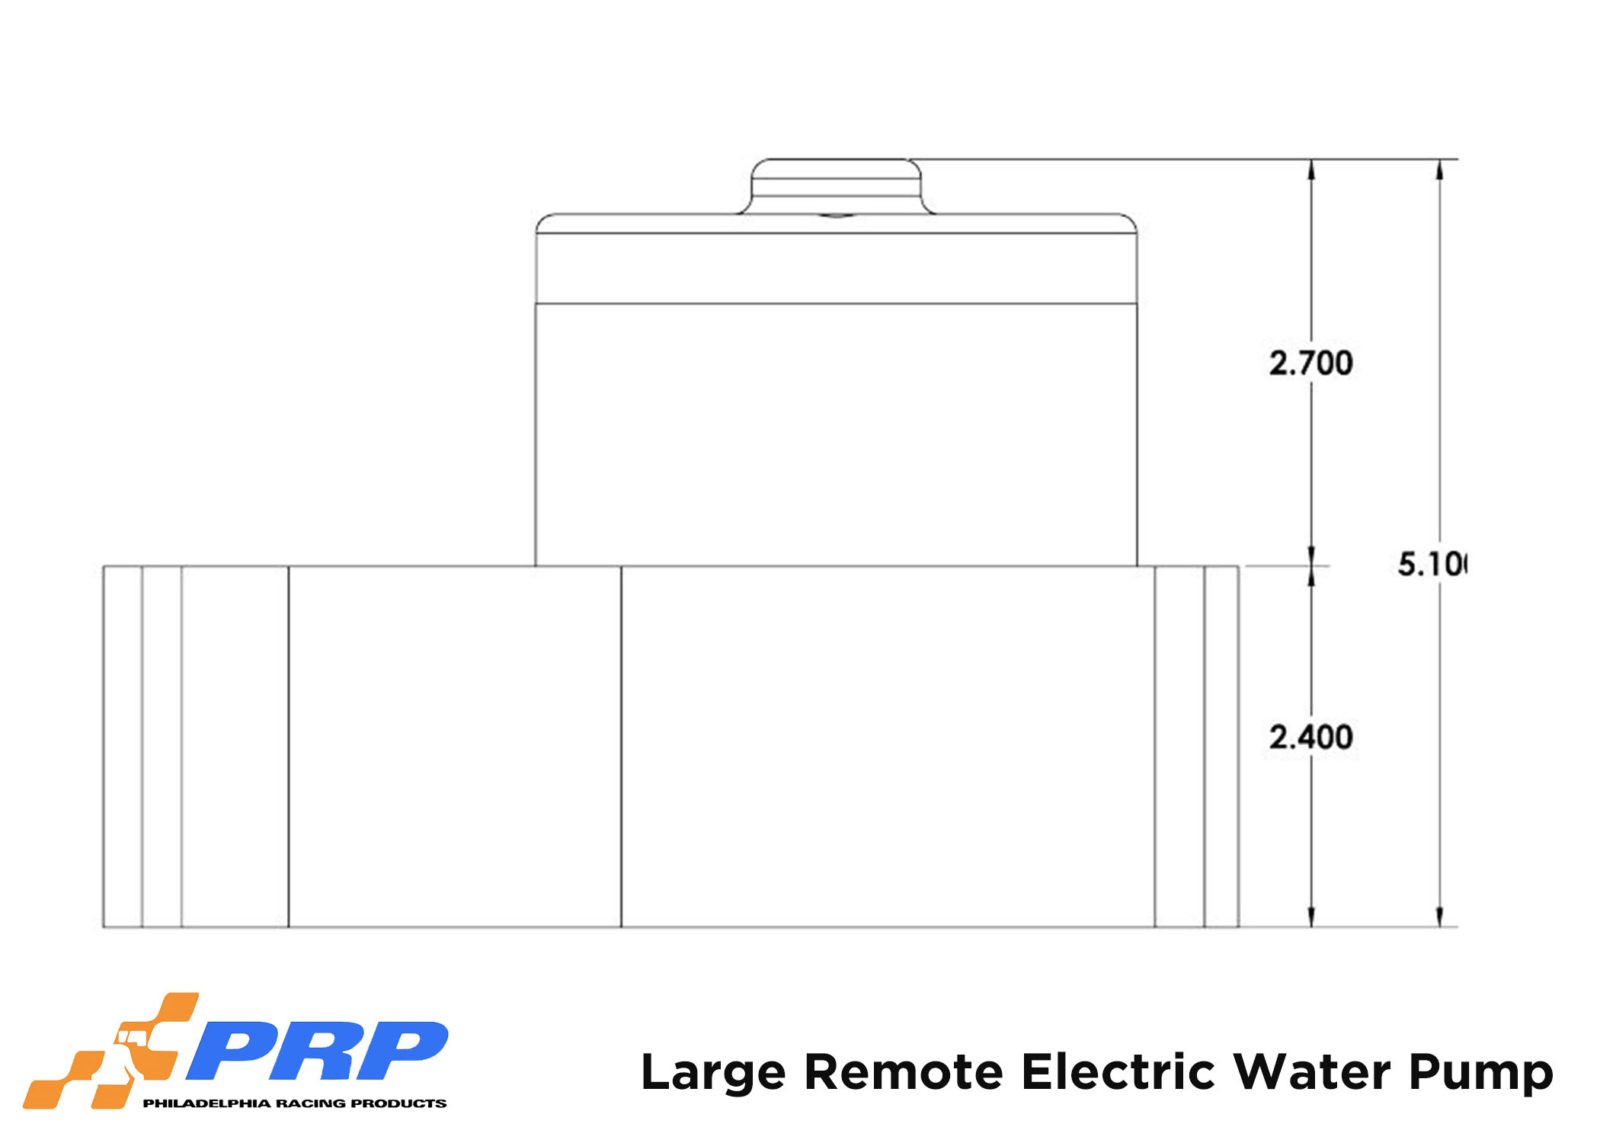 Large Remote Electric Water Pump Sizing graphic made by PRP Racing Products